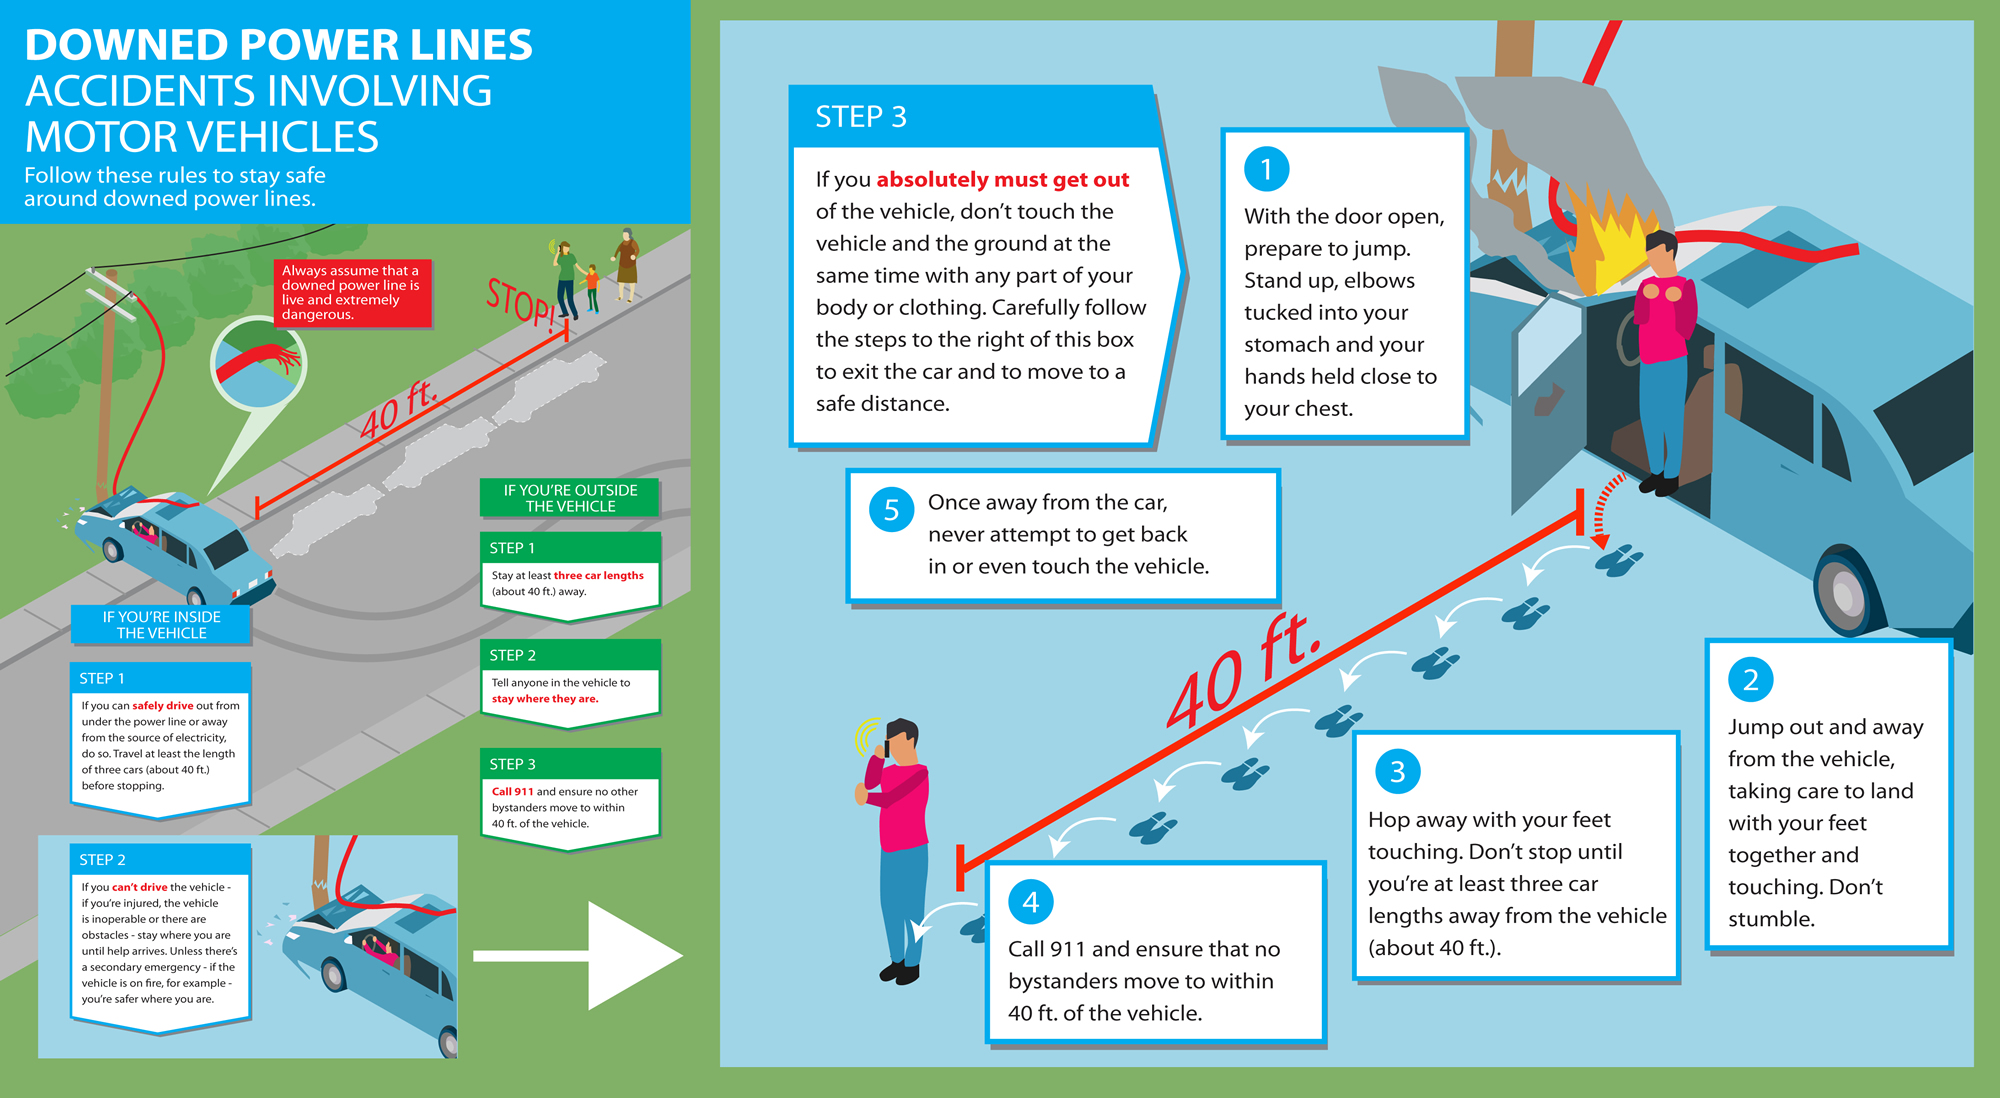 Steps on what to do if you are in an accident with a downed power line